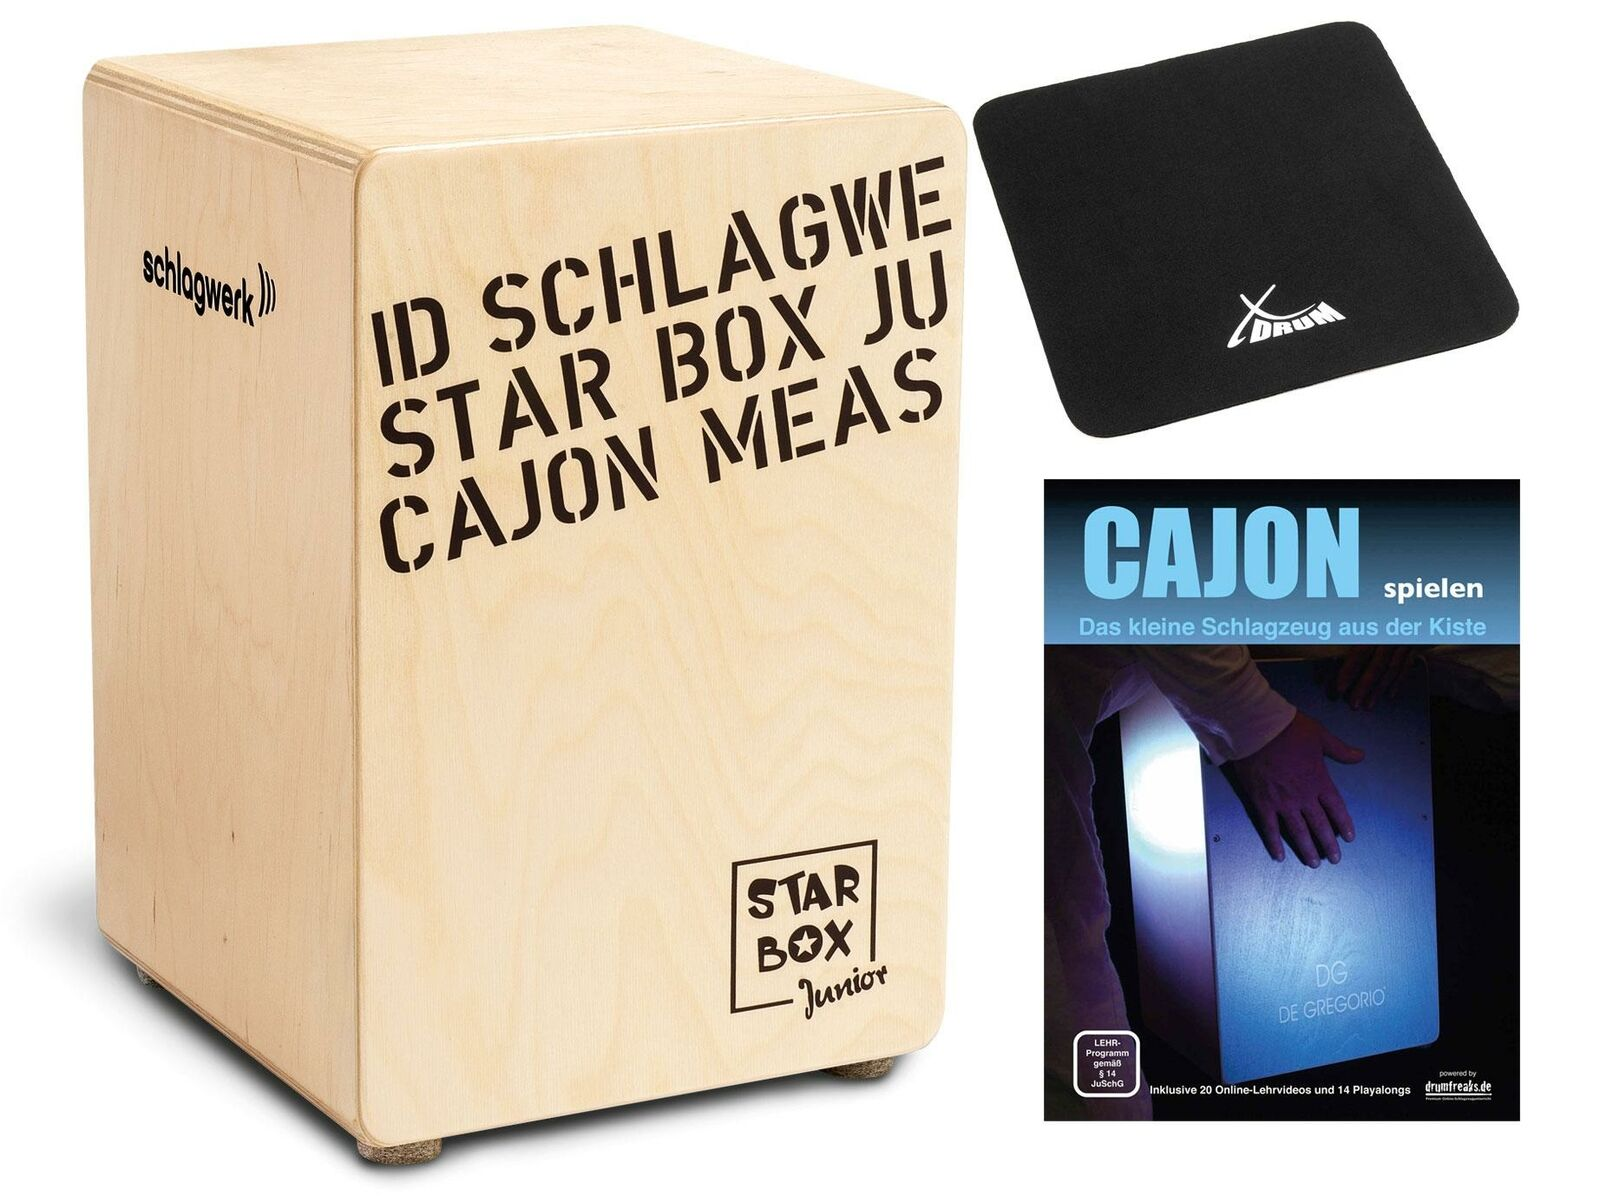 Schlagwerk CP400SB Star Box Kids Kinder Cajon Percussion Drum Set Sitzpad Schule